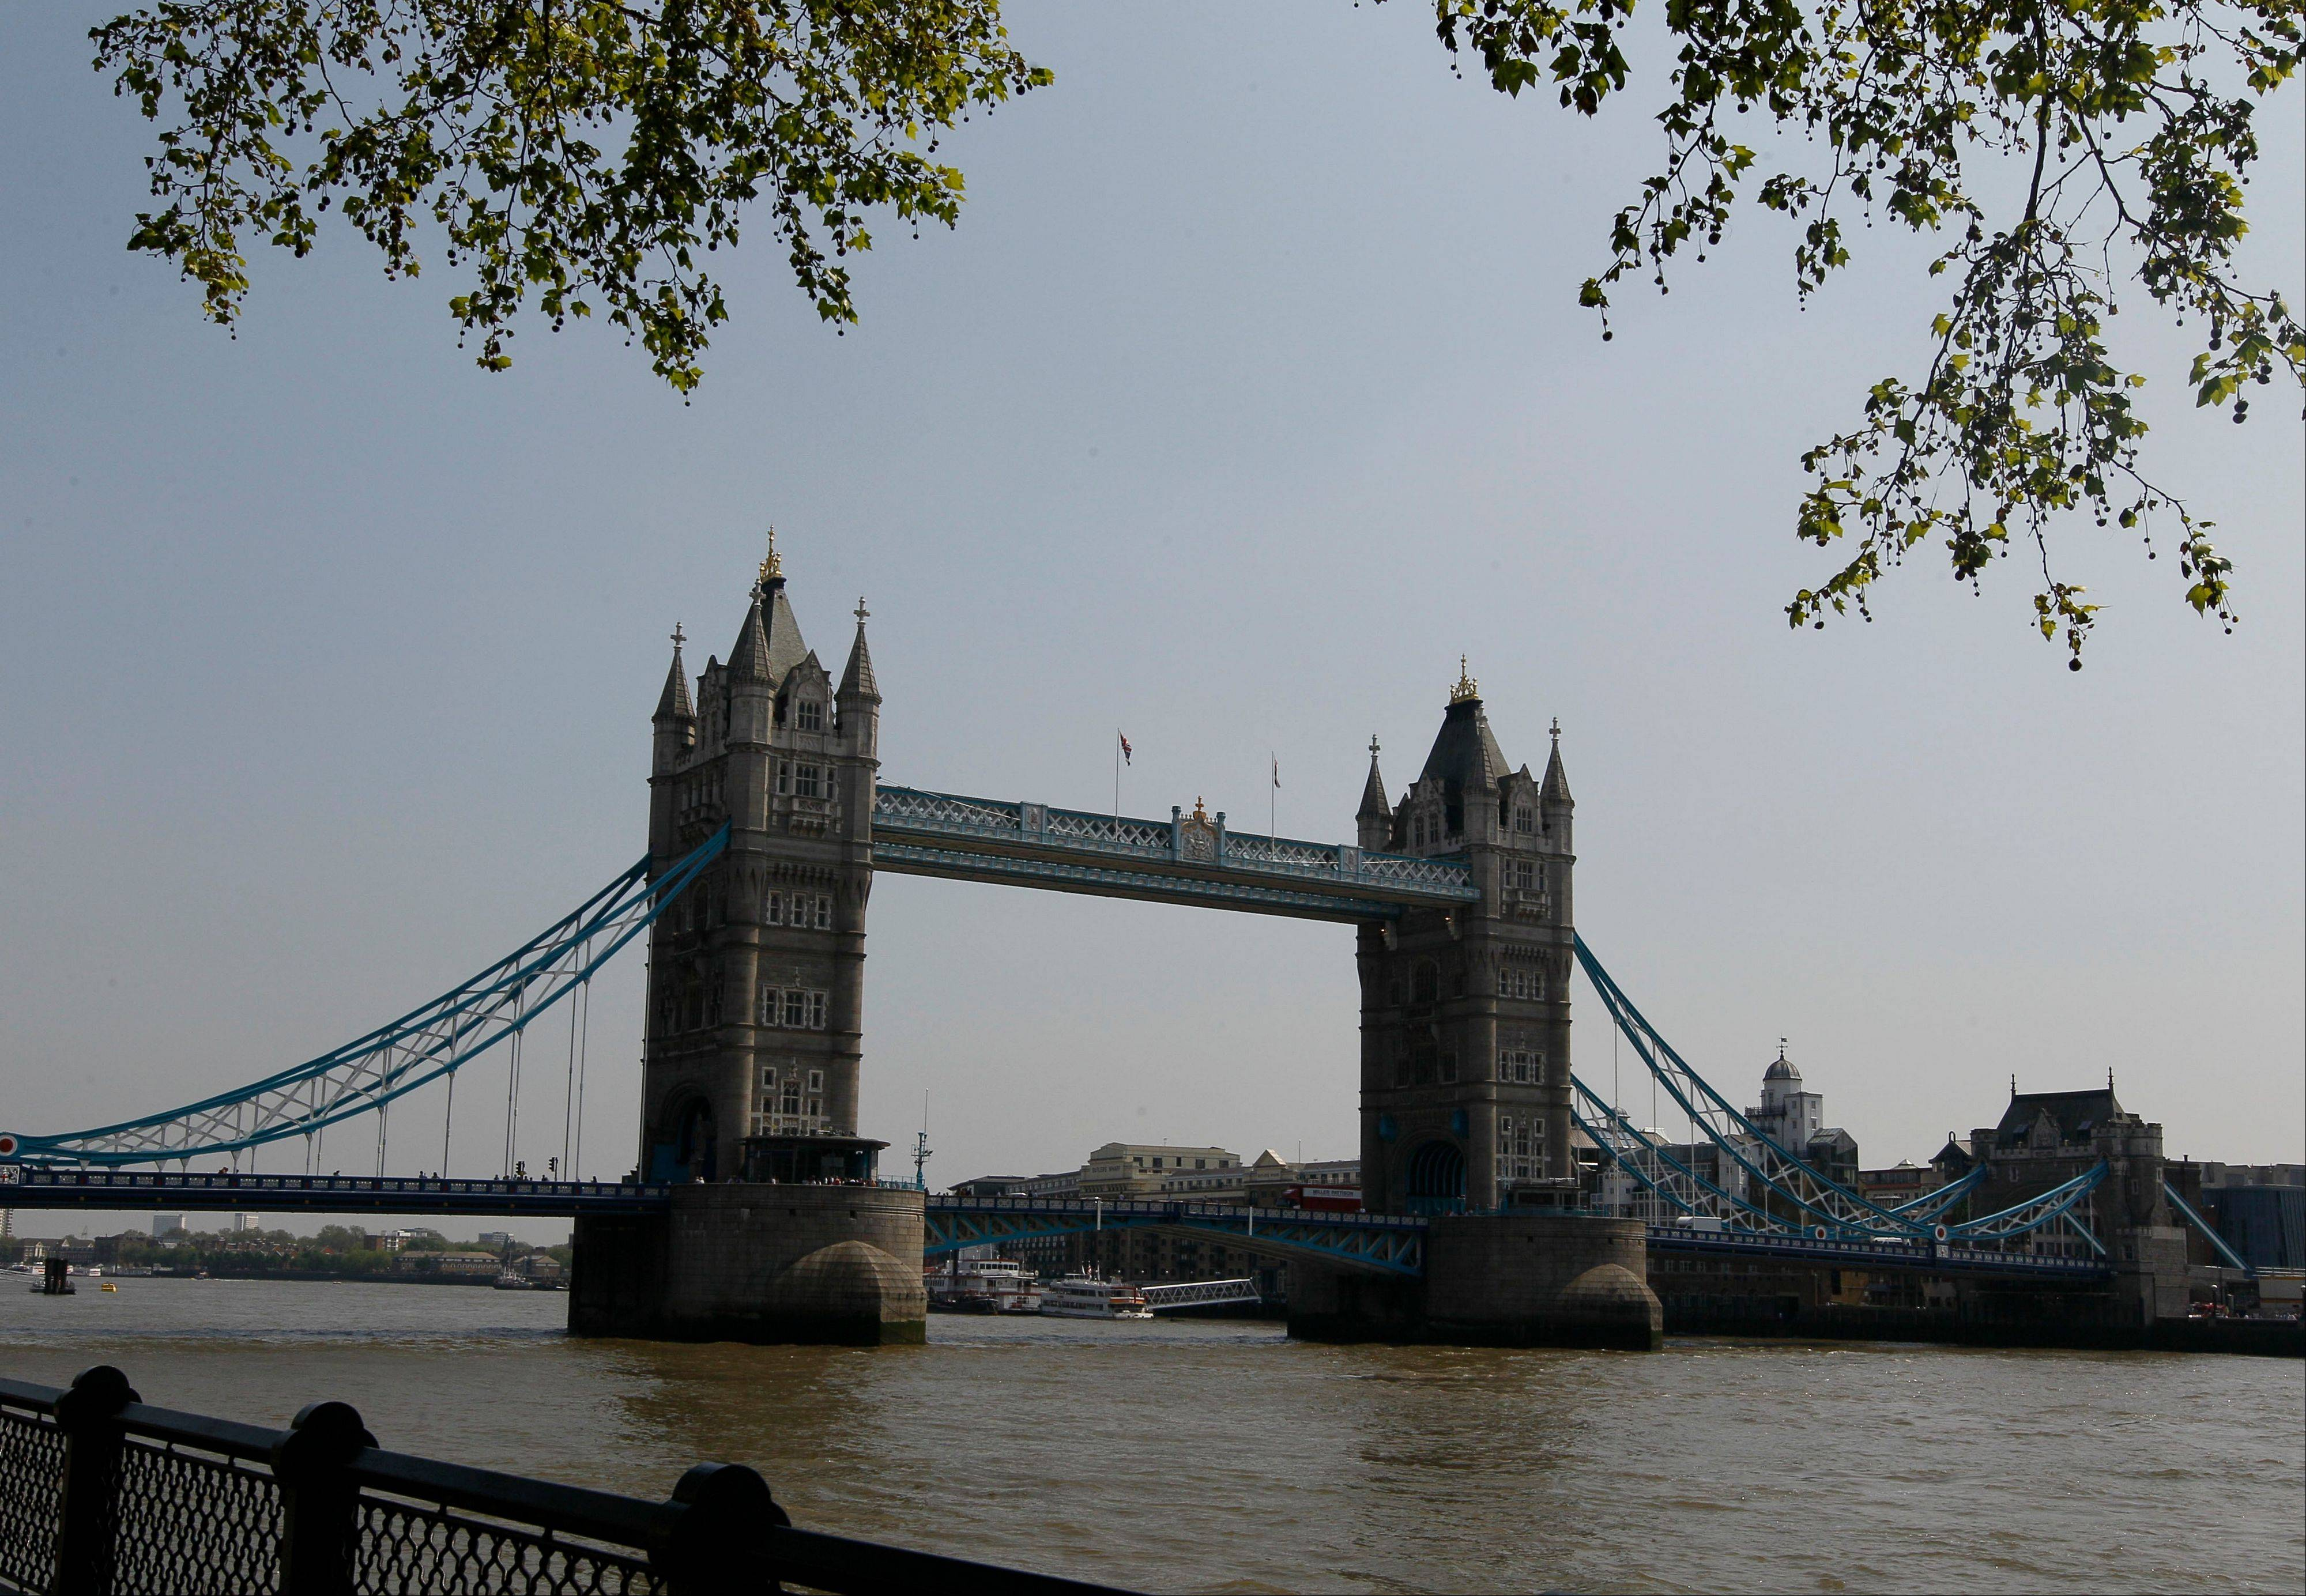 London, with its popular attractions like Tower Bridge, is waiting for the Olympics in July.